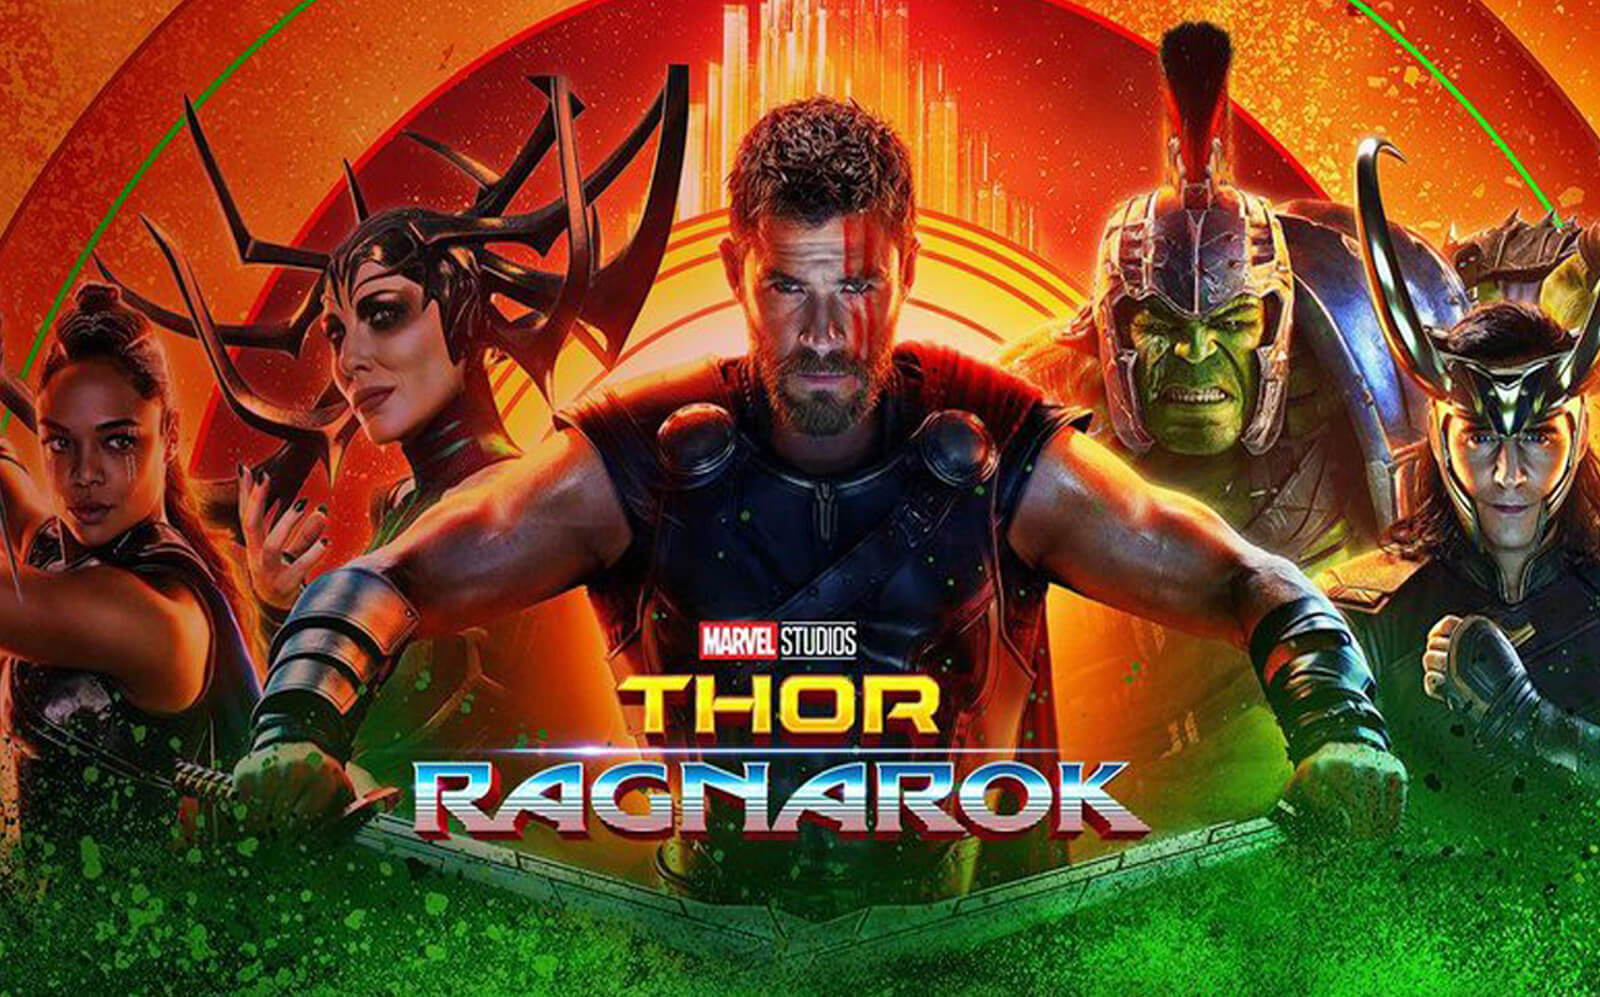 Thor Ragnarok release date on disney